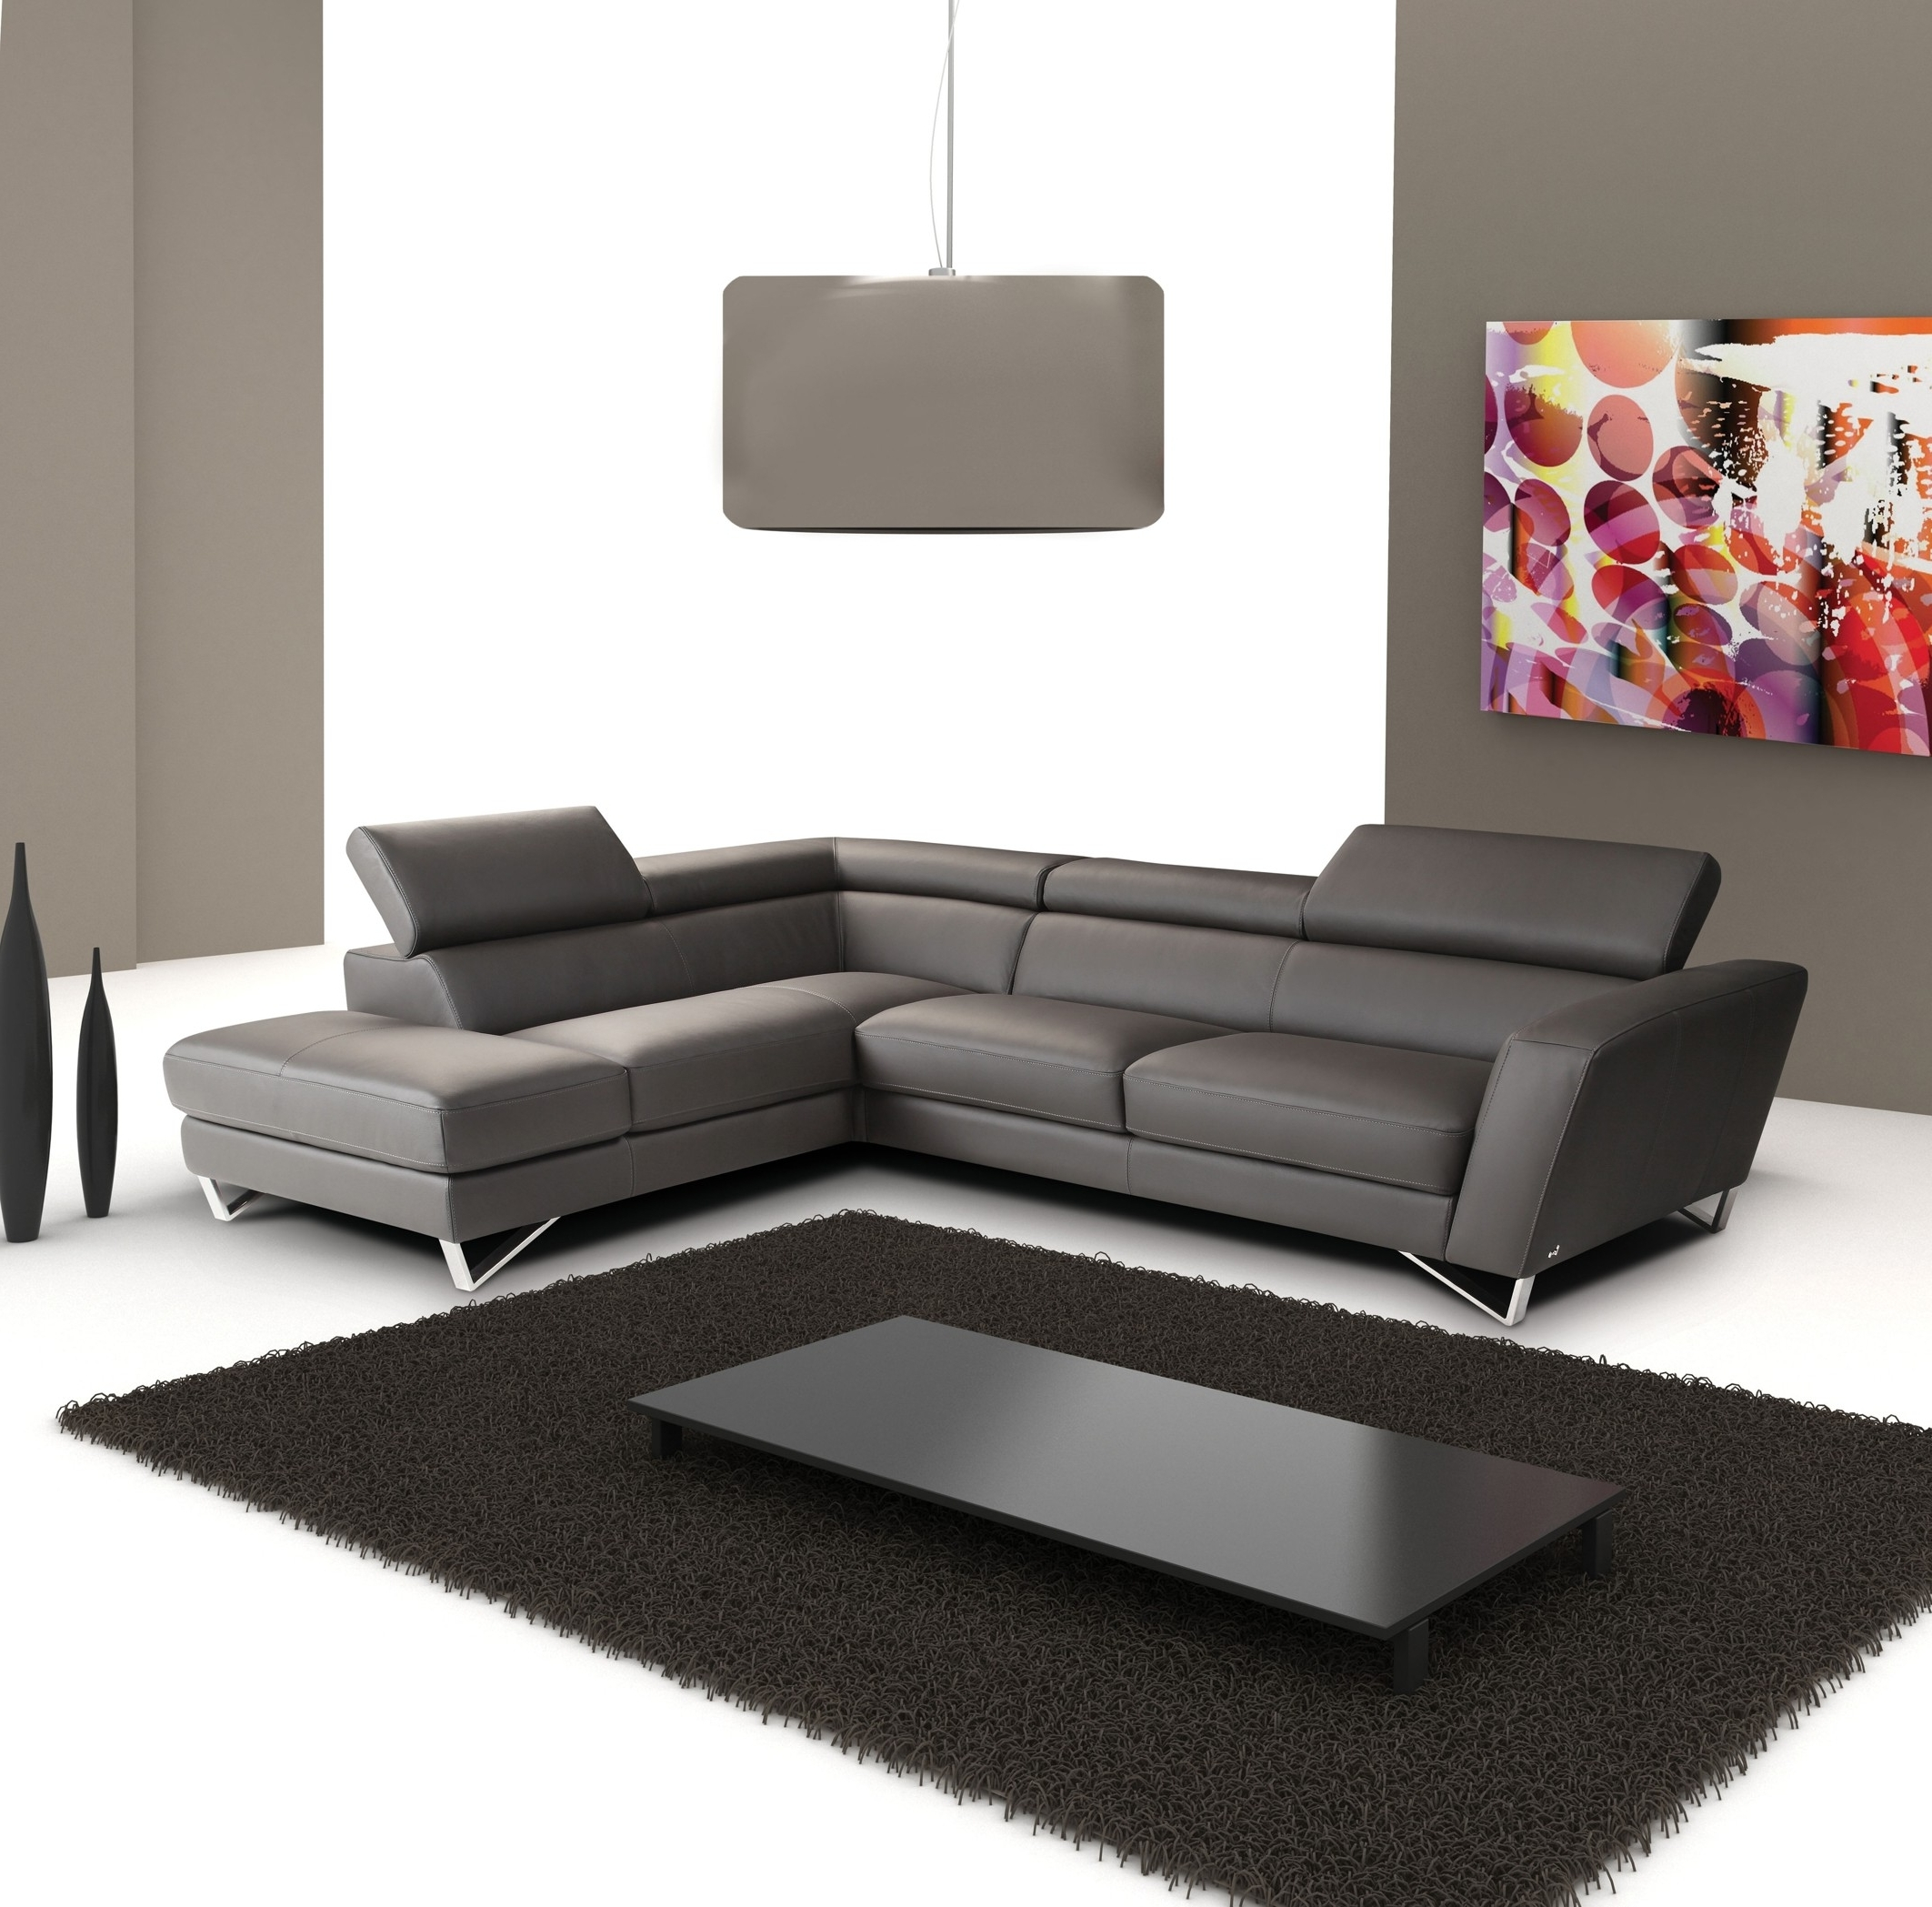 Sectional Sofas At Bc Canada Throughout Most Popular Sectional Modern Sofa Interior White Button Leather Furniture (View 11 of 15)